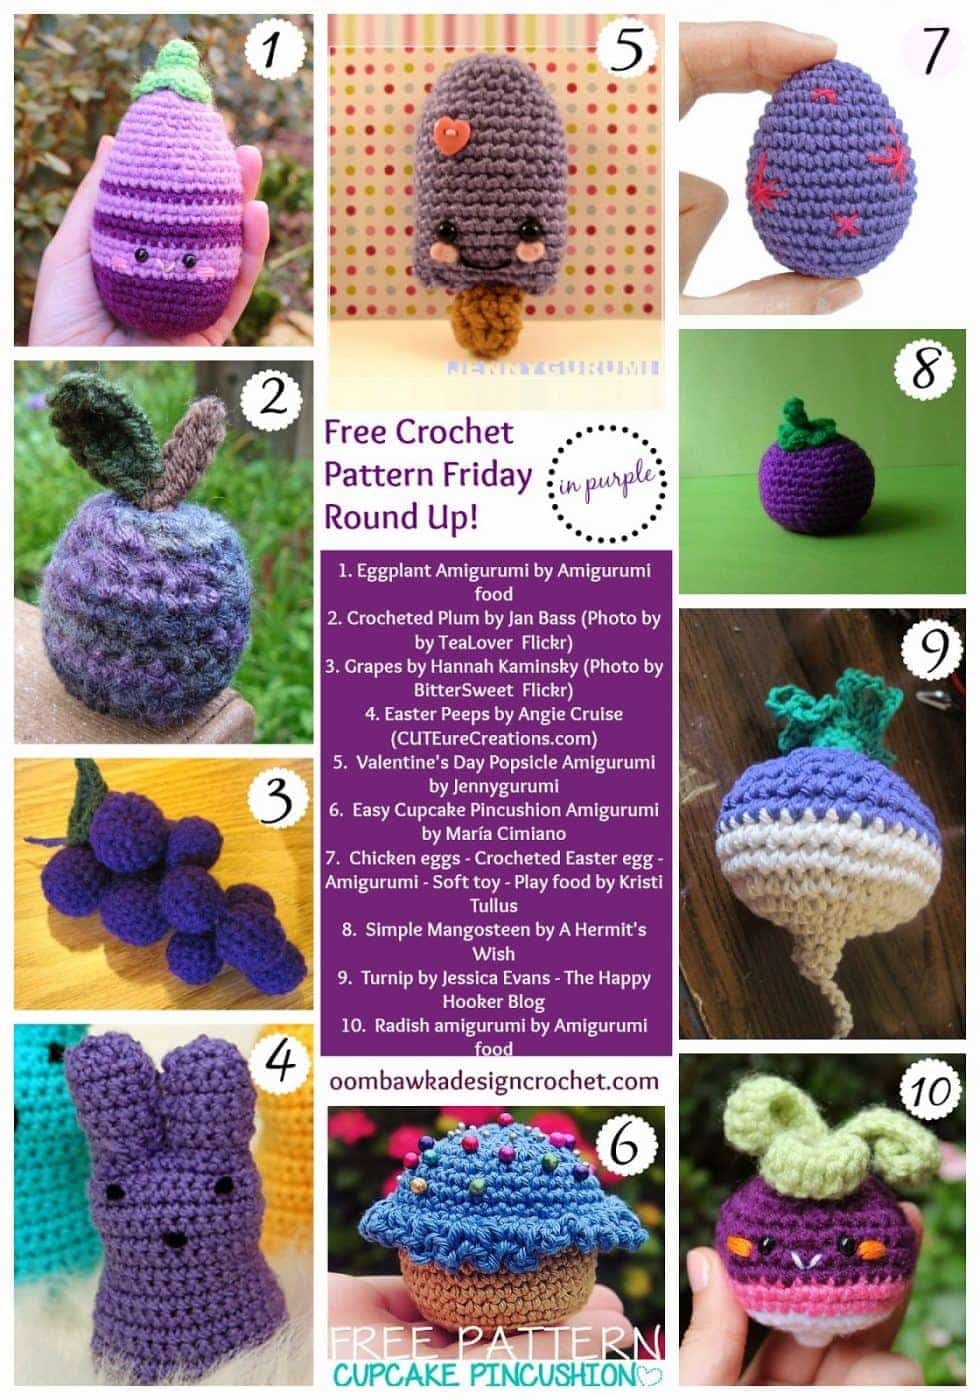 Free Patterns Crocheted in the Color Purple